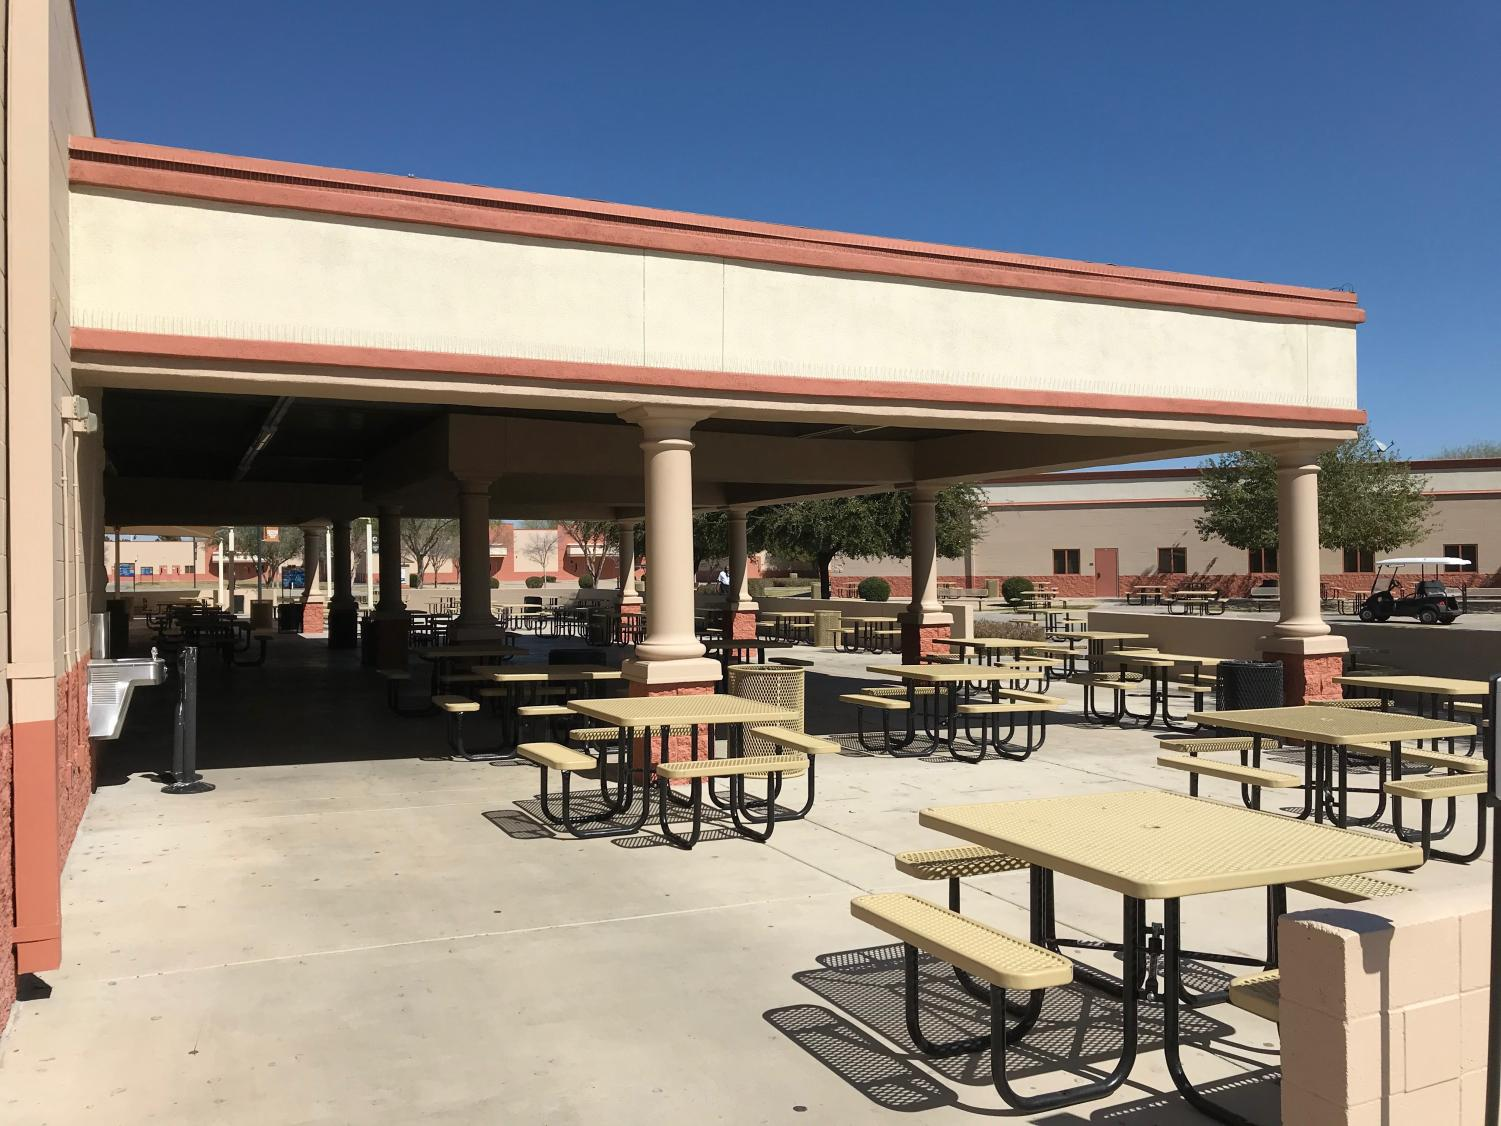 Although the cafeteria at school was empty most of this year, CCHS food services employees were busy making sure students were fed.